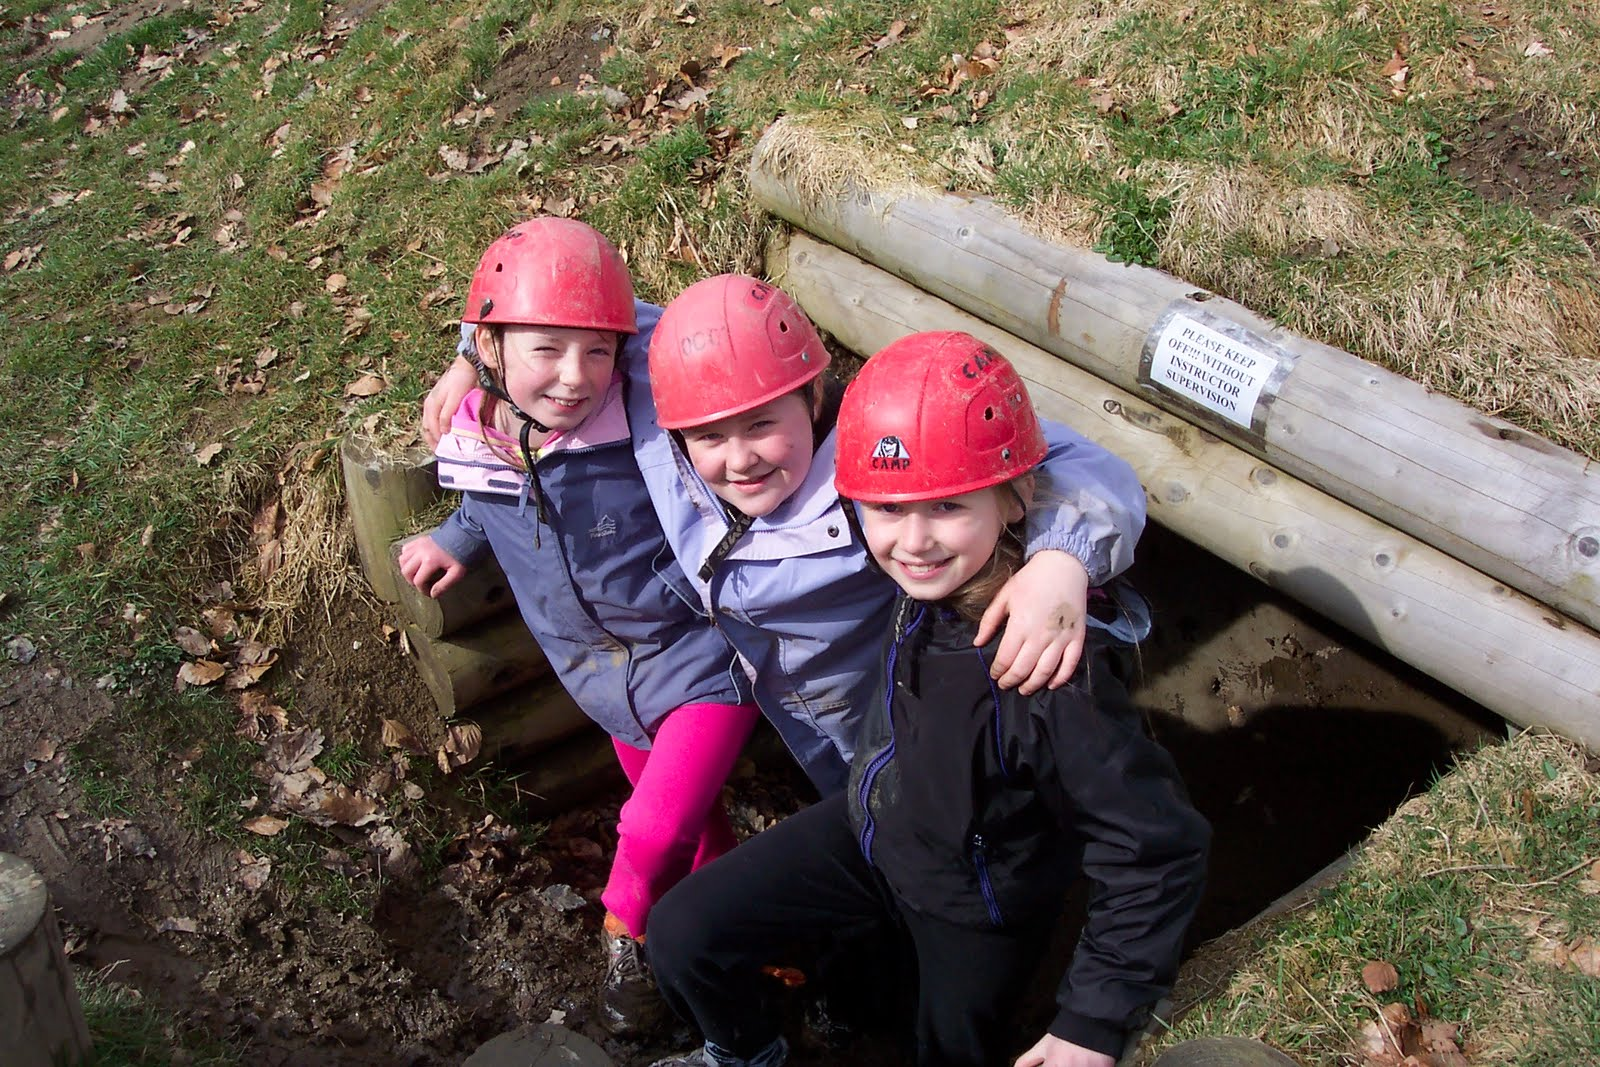 abernant dating The really great part of the story, to me, was that we found each other very quickly we both decided to try online dating and, within our first week, met each other.